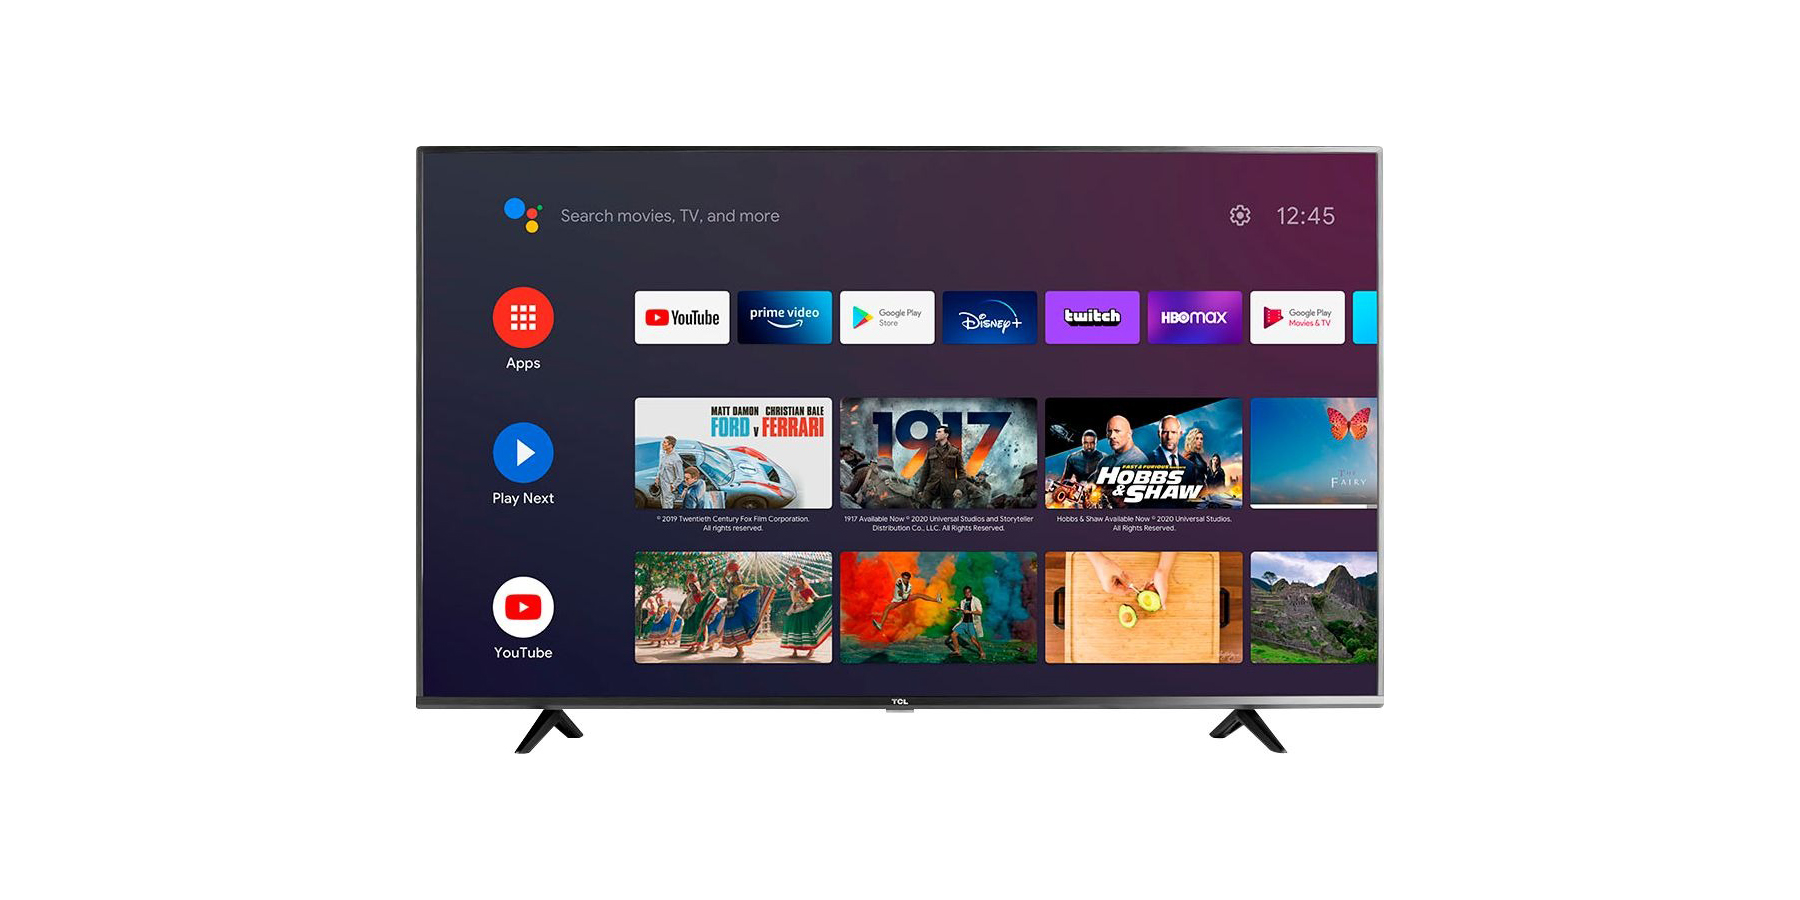 These are the best Android TV devices [Late 2020] – 9to5Google